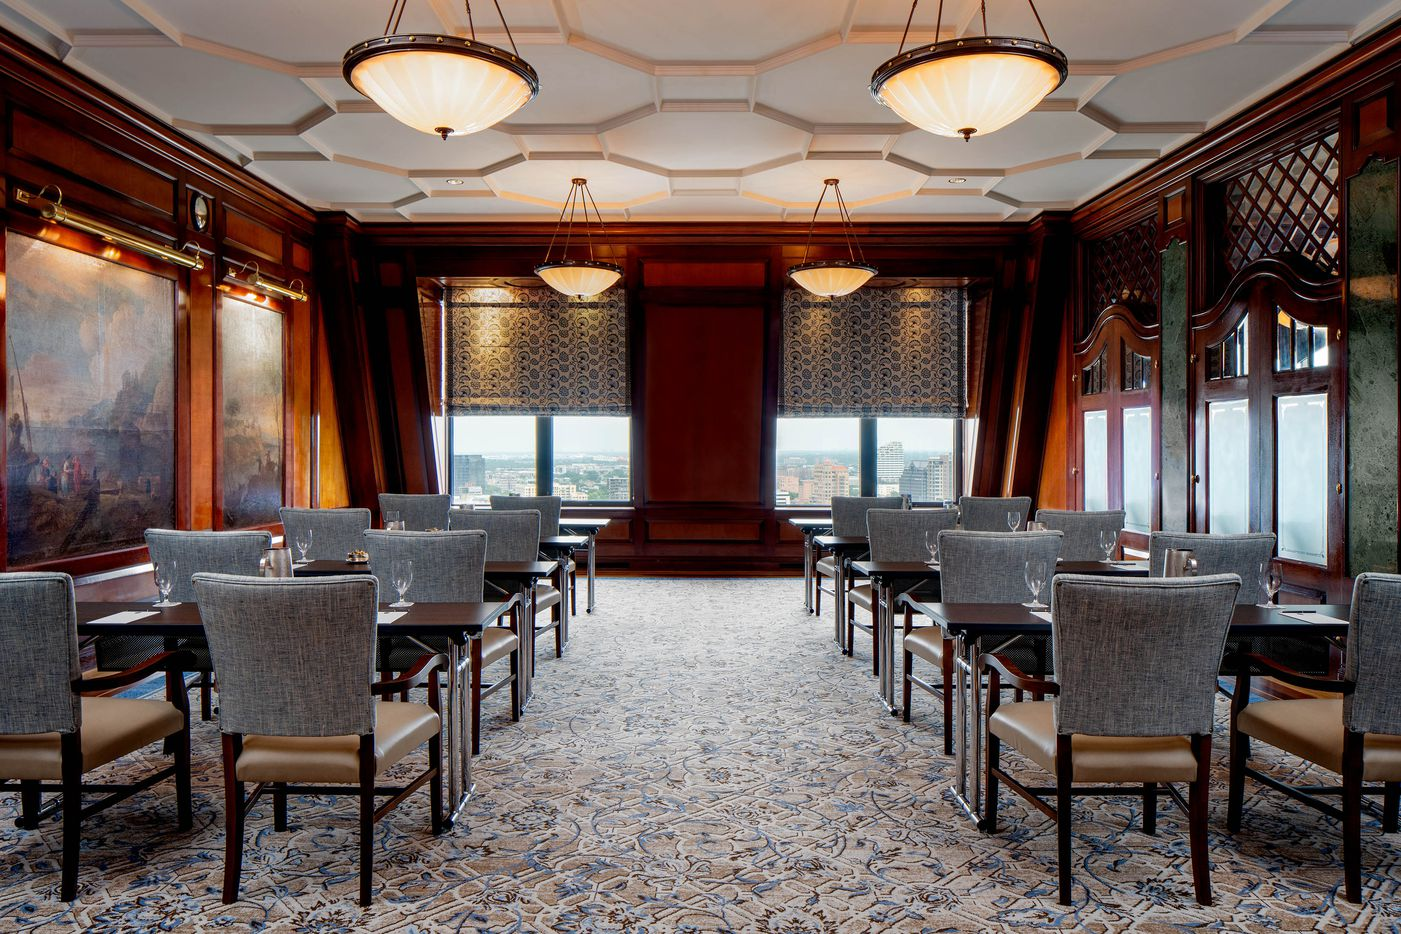 The Crescent Club has gotten its first major makeover.